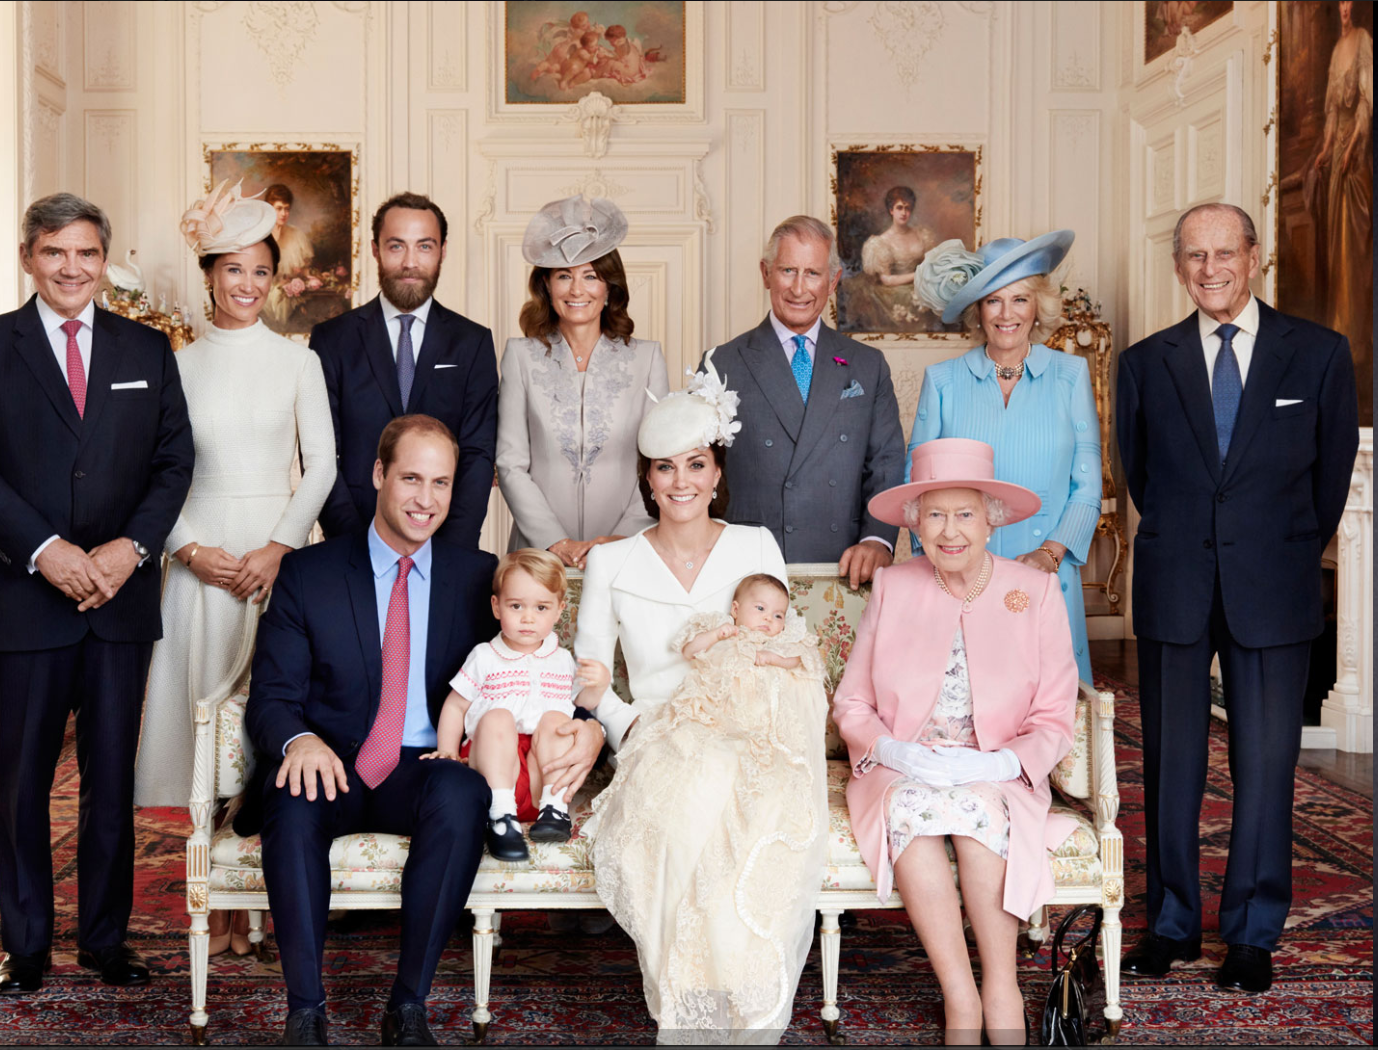 12 Things You Need To Know About The Royal Family